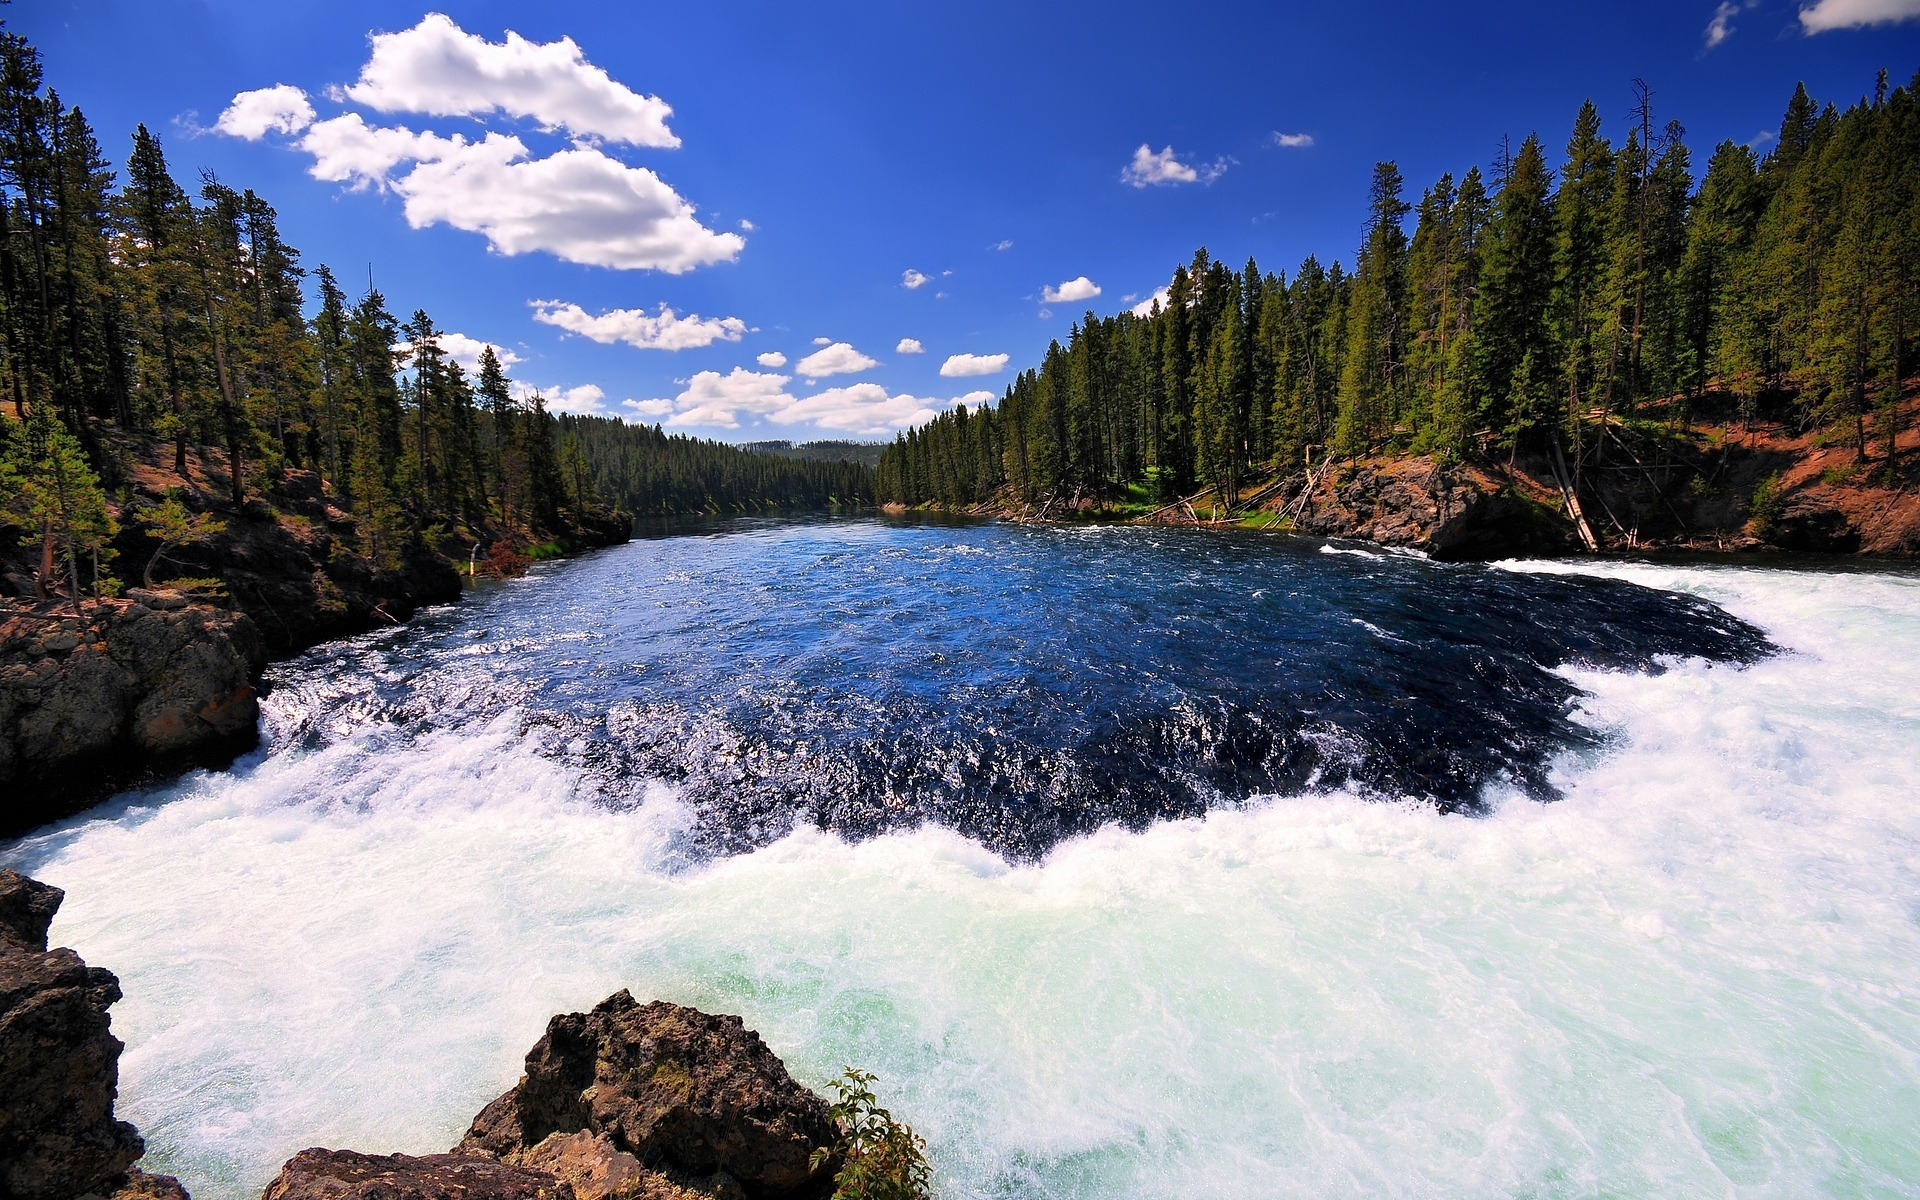 river Yellowstone Yellowstone national park wallpapers and images 1920x1200